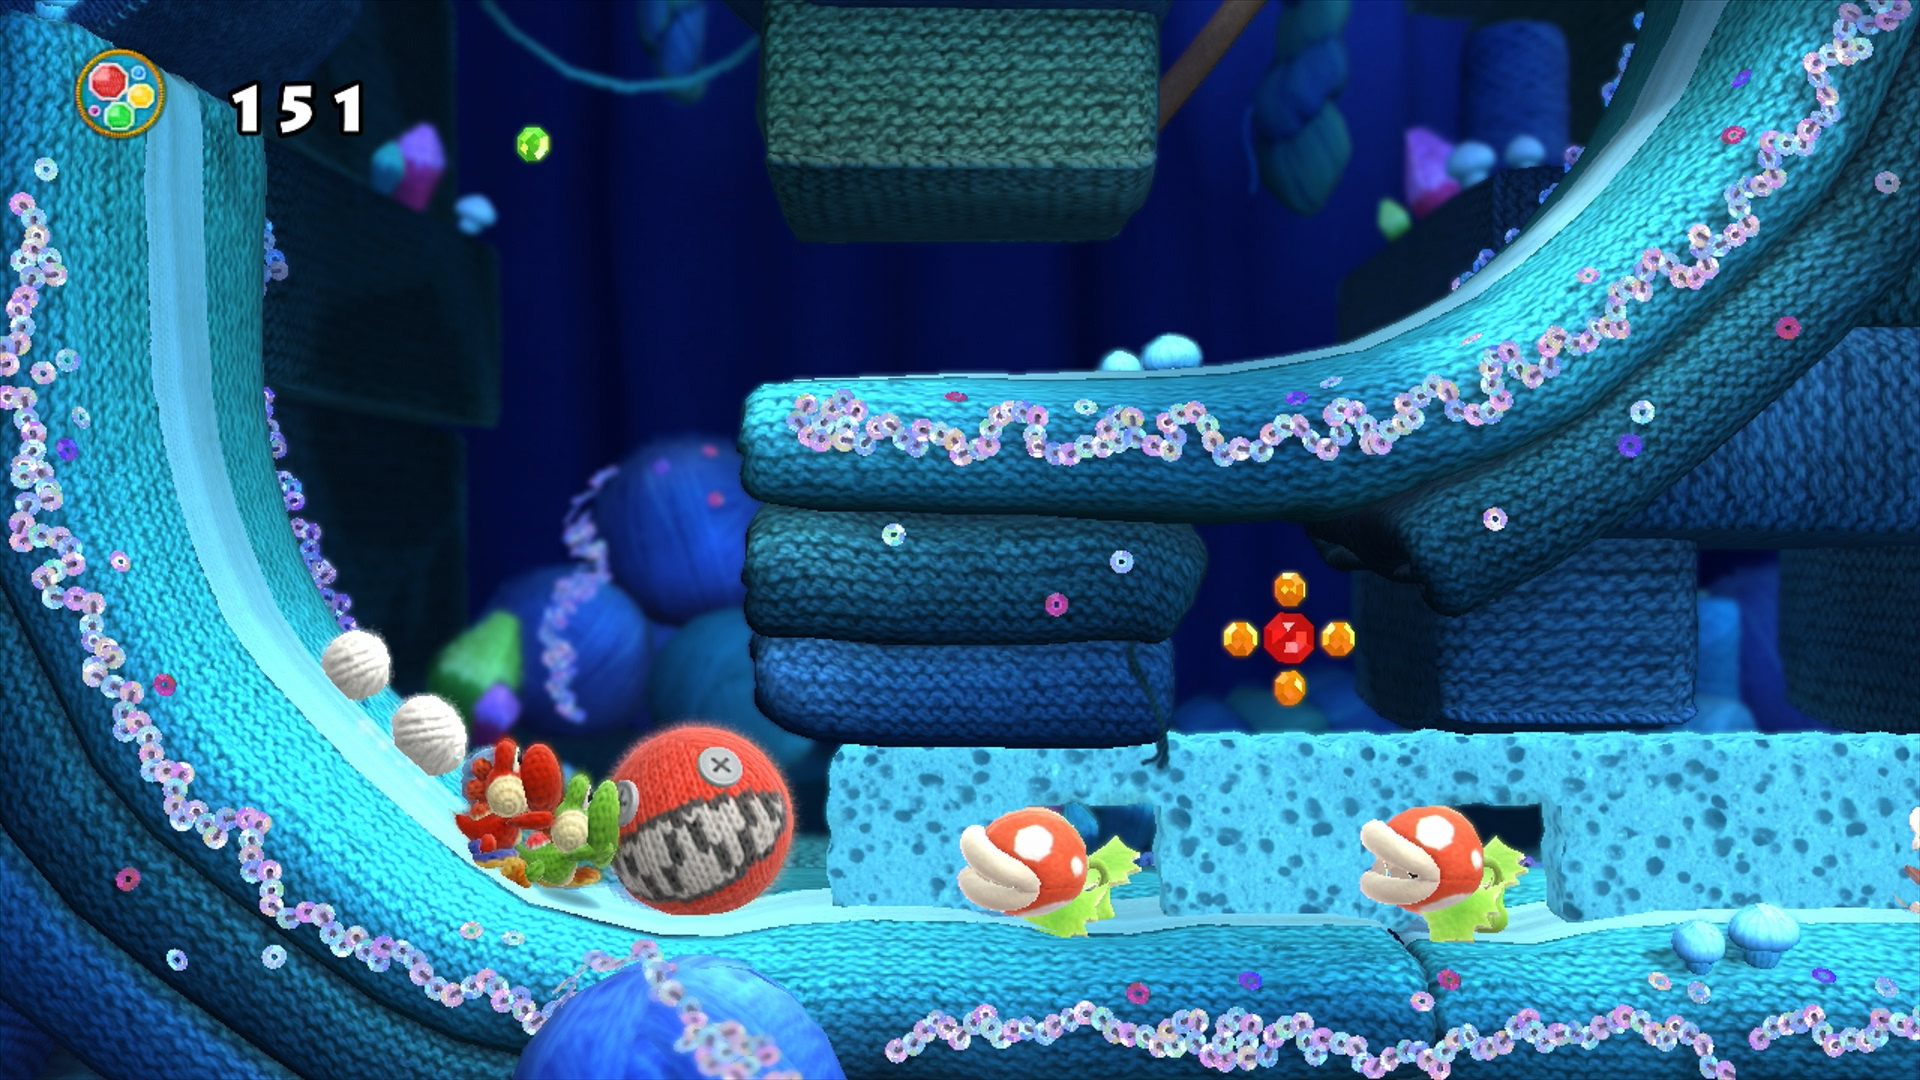 Sequins Fit The Theme, As Well As Add A Shiny, Bright Look To Even The Dark Cave Levels